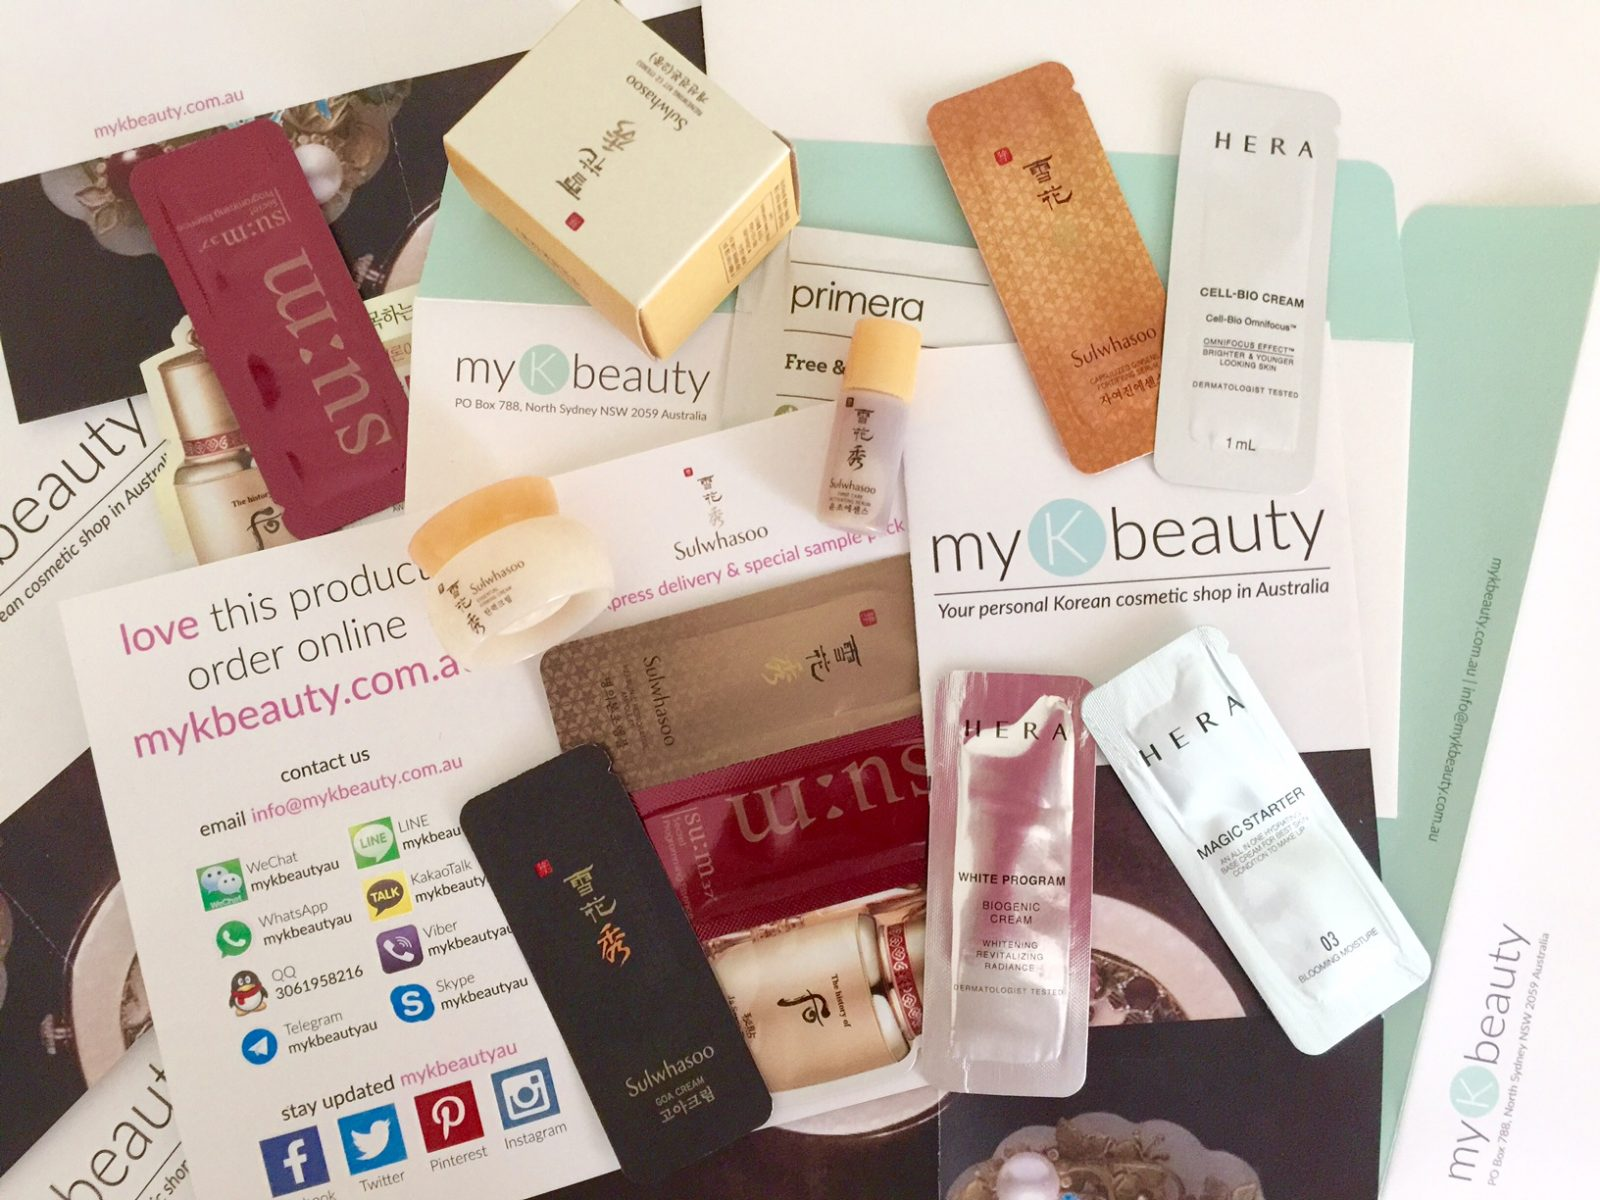 25 free makeup samples to get by mail.